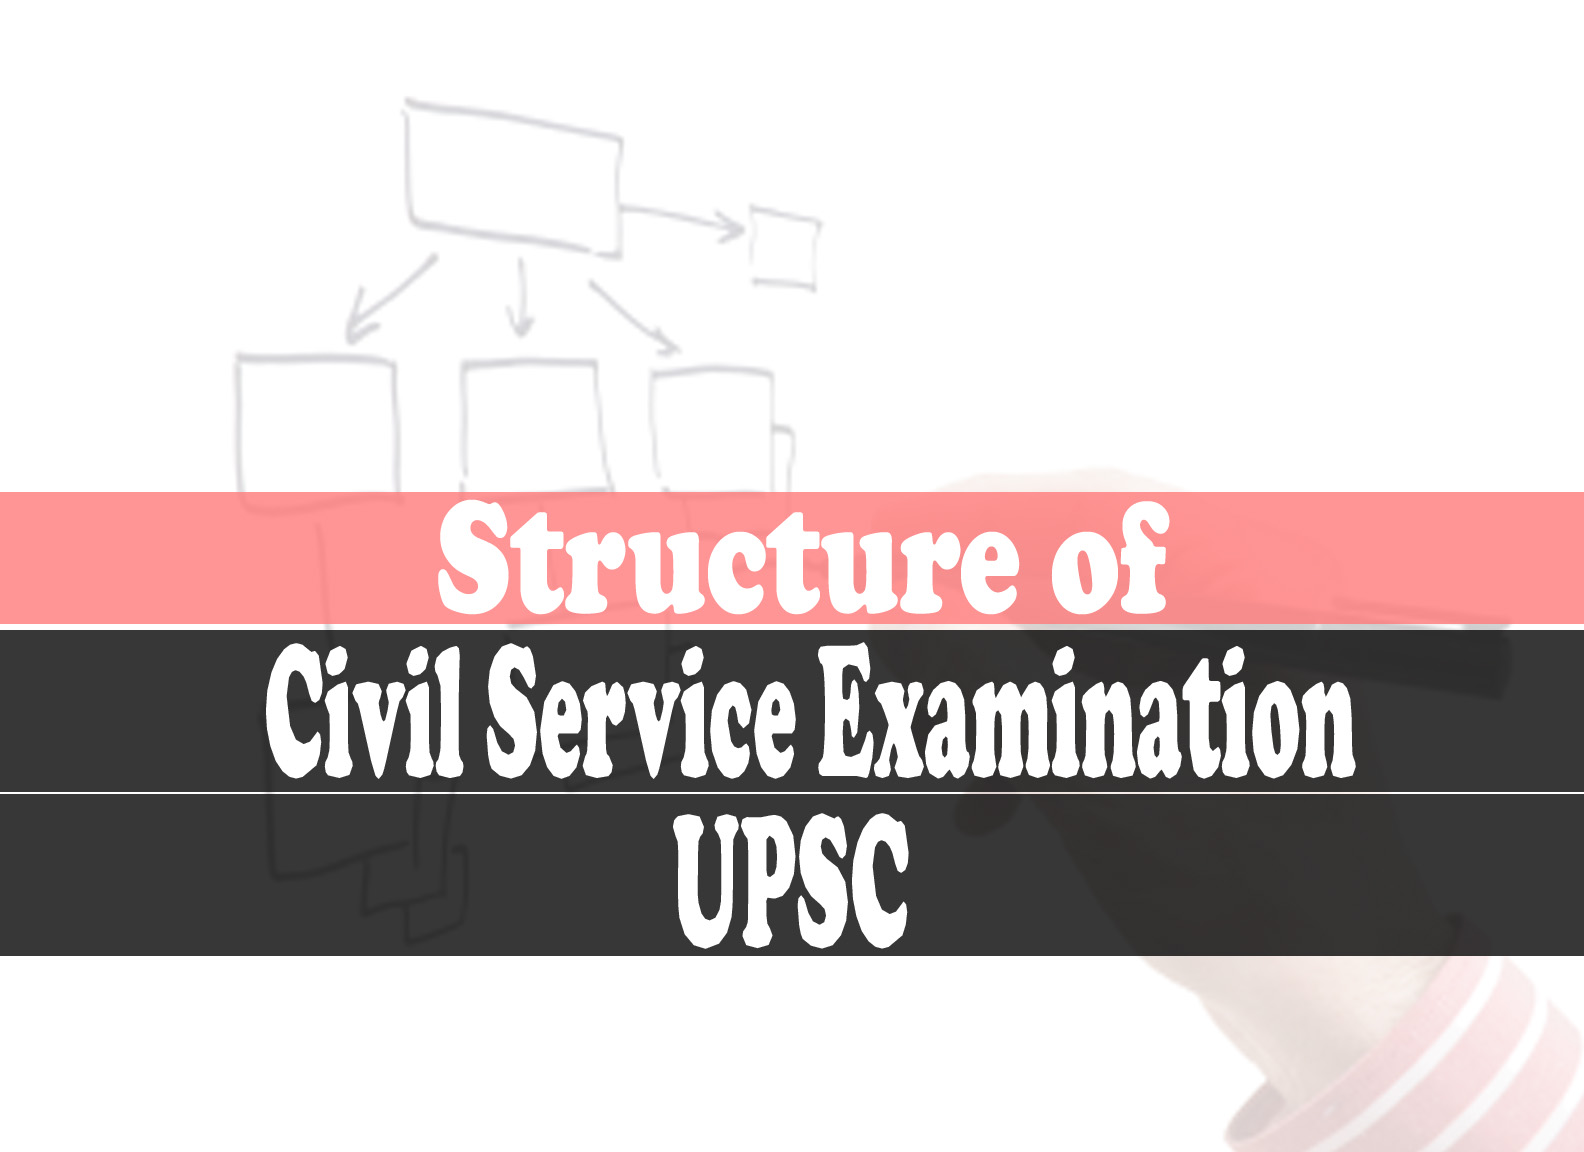 structure of upsc srsalman, srsalman structure of upsc, srsalman upsc, cse srsalman, ias, srsalman ias, srsalman ips, srsalman ifs, srsalman current affairs, srsalman upsc structure,  structure of upsc structure of upsc exam structure of upsc prelims structure of upsc mains exam structure of upsc examination structure of upsc commission structure of atmosphere upsc fee structure of upsc coaching in delhi structure of earth upsc structure of rbi upsc structure of atom upsc structure of niti aayog upsc composition and structure of atmosphere upsc structure and function of upsc age structure of india upsc different layers of atmosphere upsc basic structure of constitution upsc basic structure of doctrine upsc basic structure of the constitution upsc structure of upsc civil services exam fees structure of upsc class structure of tropical cyclone upsc internal structure of cities upsc basic structure of indian constitution upsc structure of atmosphere for upsc structure for upsc exam fee structure of upsc internal structure of earth for upsc federal structure of india upsc geological structure of india upsc age structure upsc structure of india upsc occupational structure of india upsc structure of earth interior upsc structure of essay in upsc structure and relief of india upsc structure and composition of industry upsc internal structure of earth notes upsc functions of niti aayog upsc composition of niti aayog upsc role of niti aayog upsc structure of parliament upsc structure of the earth upsc structure of the atmosphere upsc interior structure of the earth upsc internal structure of the earth upsc structure of wto upsc functions of wto upsc structure of upsc examination structure of upsc exam structure of upsc mains exam fee structure of upsc exam structure of upsc civil services exam structure of upsc examination structure of upsc exam structure of upsc mains exam fee structure of upsc exam structure of upsc civil services exam what is the structure of upsc exam st